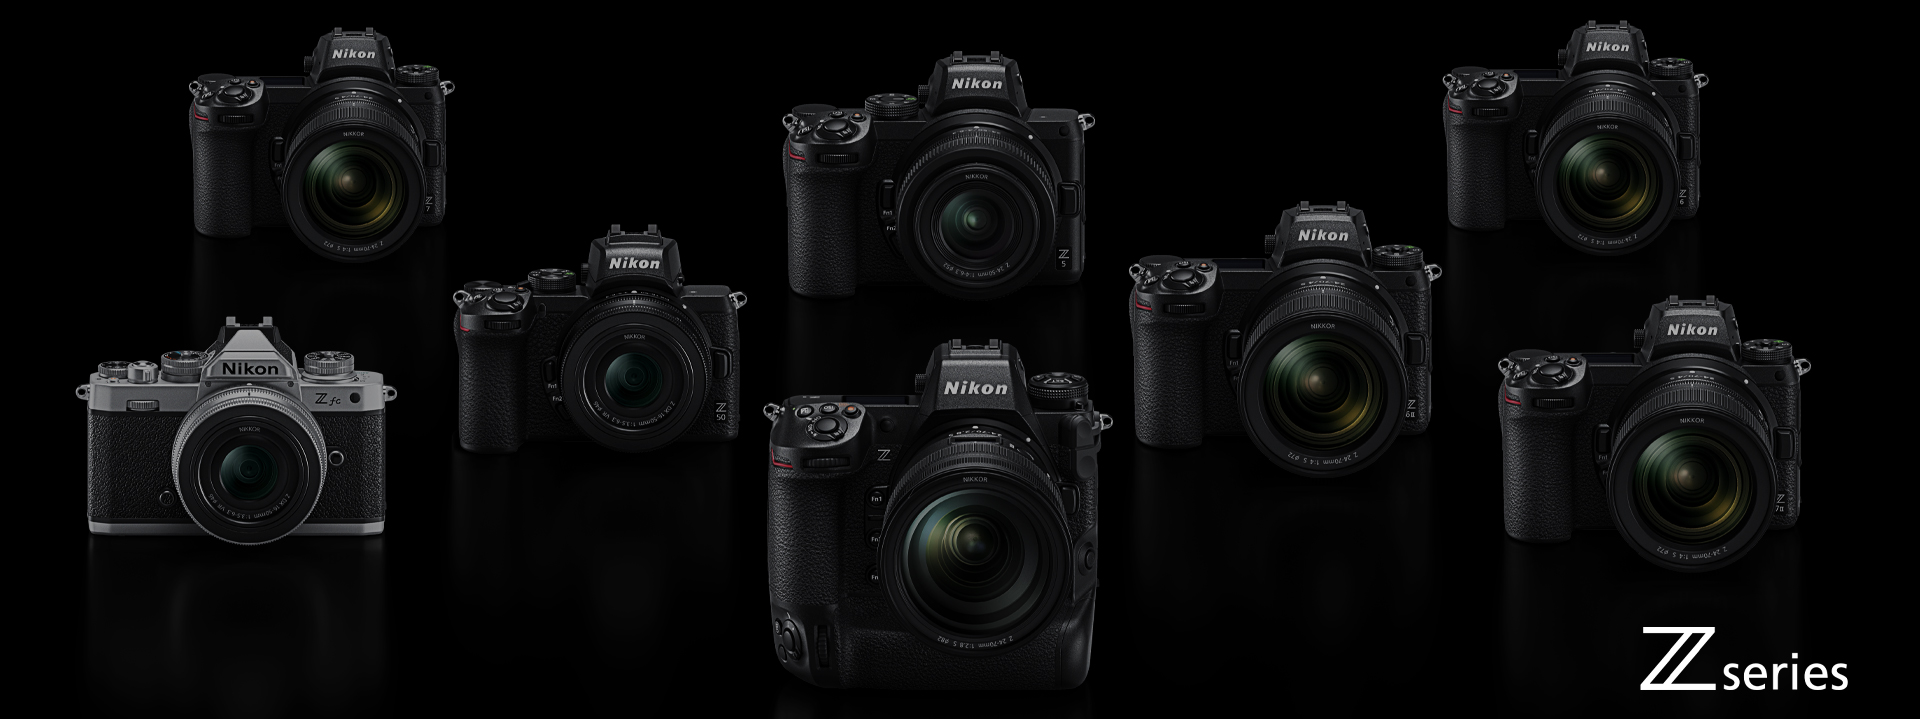 nikon_mirrorless_camera_hub_overview_masthead